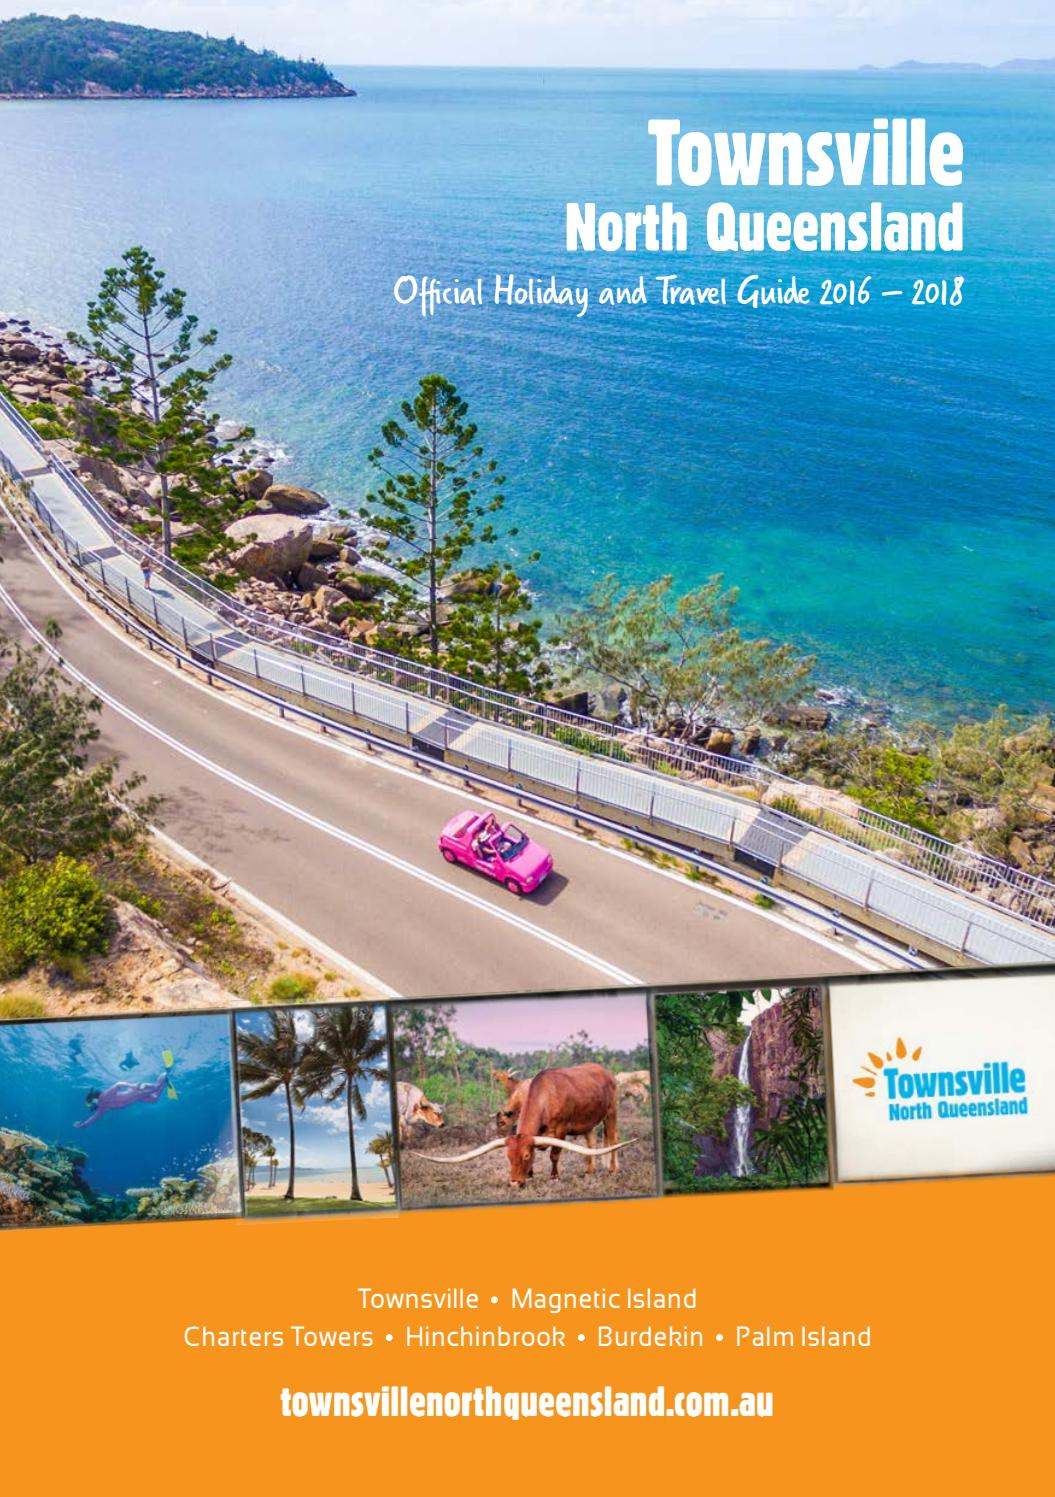 North Queensland Holiday Packages Townsville North Queensland Official Holiday And Travel Guide 2016